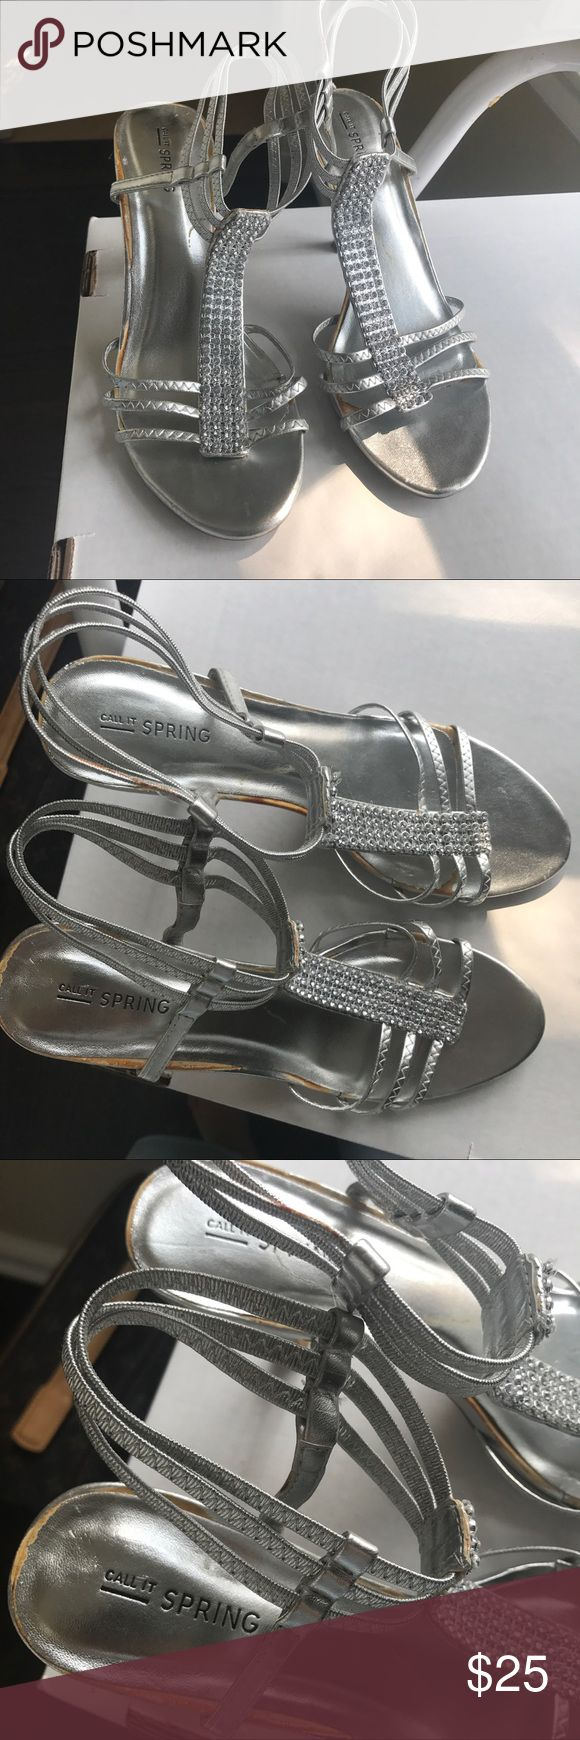 Call It Spring Silver Rhinestone Heels Size 8 Wore these heels once to prom! Has signs of shelf wear as shown in photos but they're mostly on the soles of the shoes. Beautiful for a variety of occasions! Call It Spring Shoes Heels